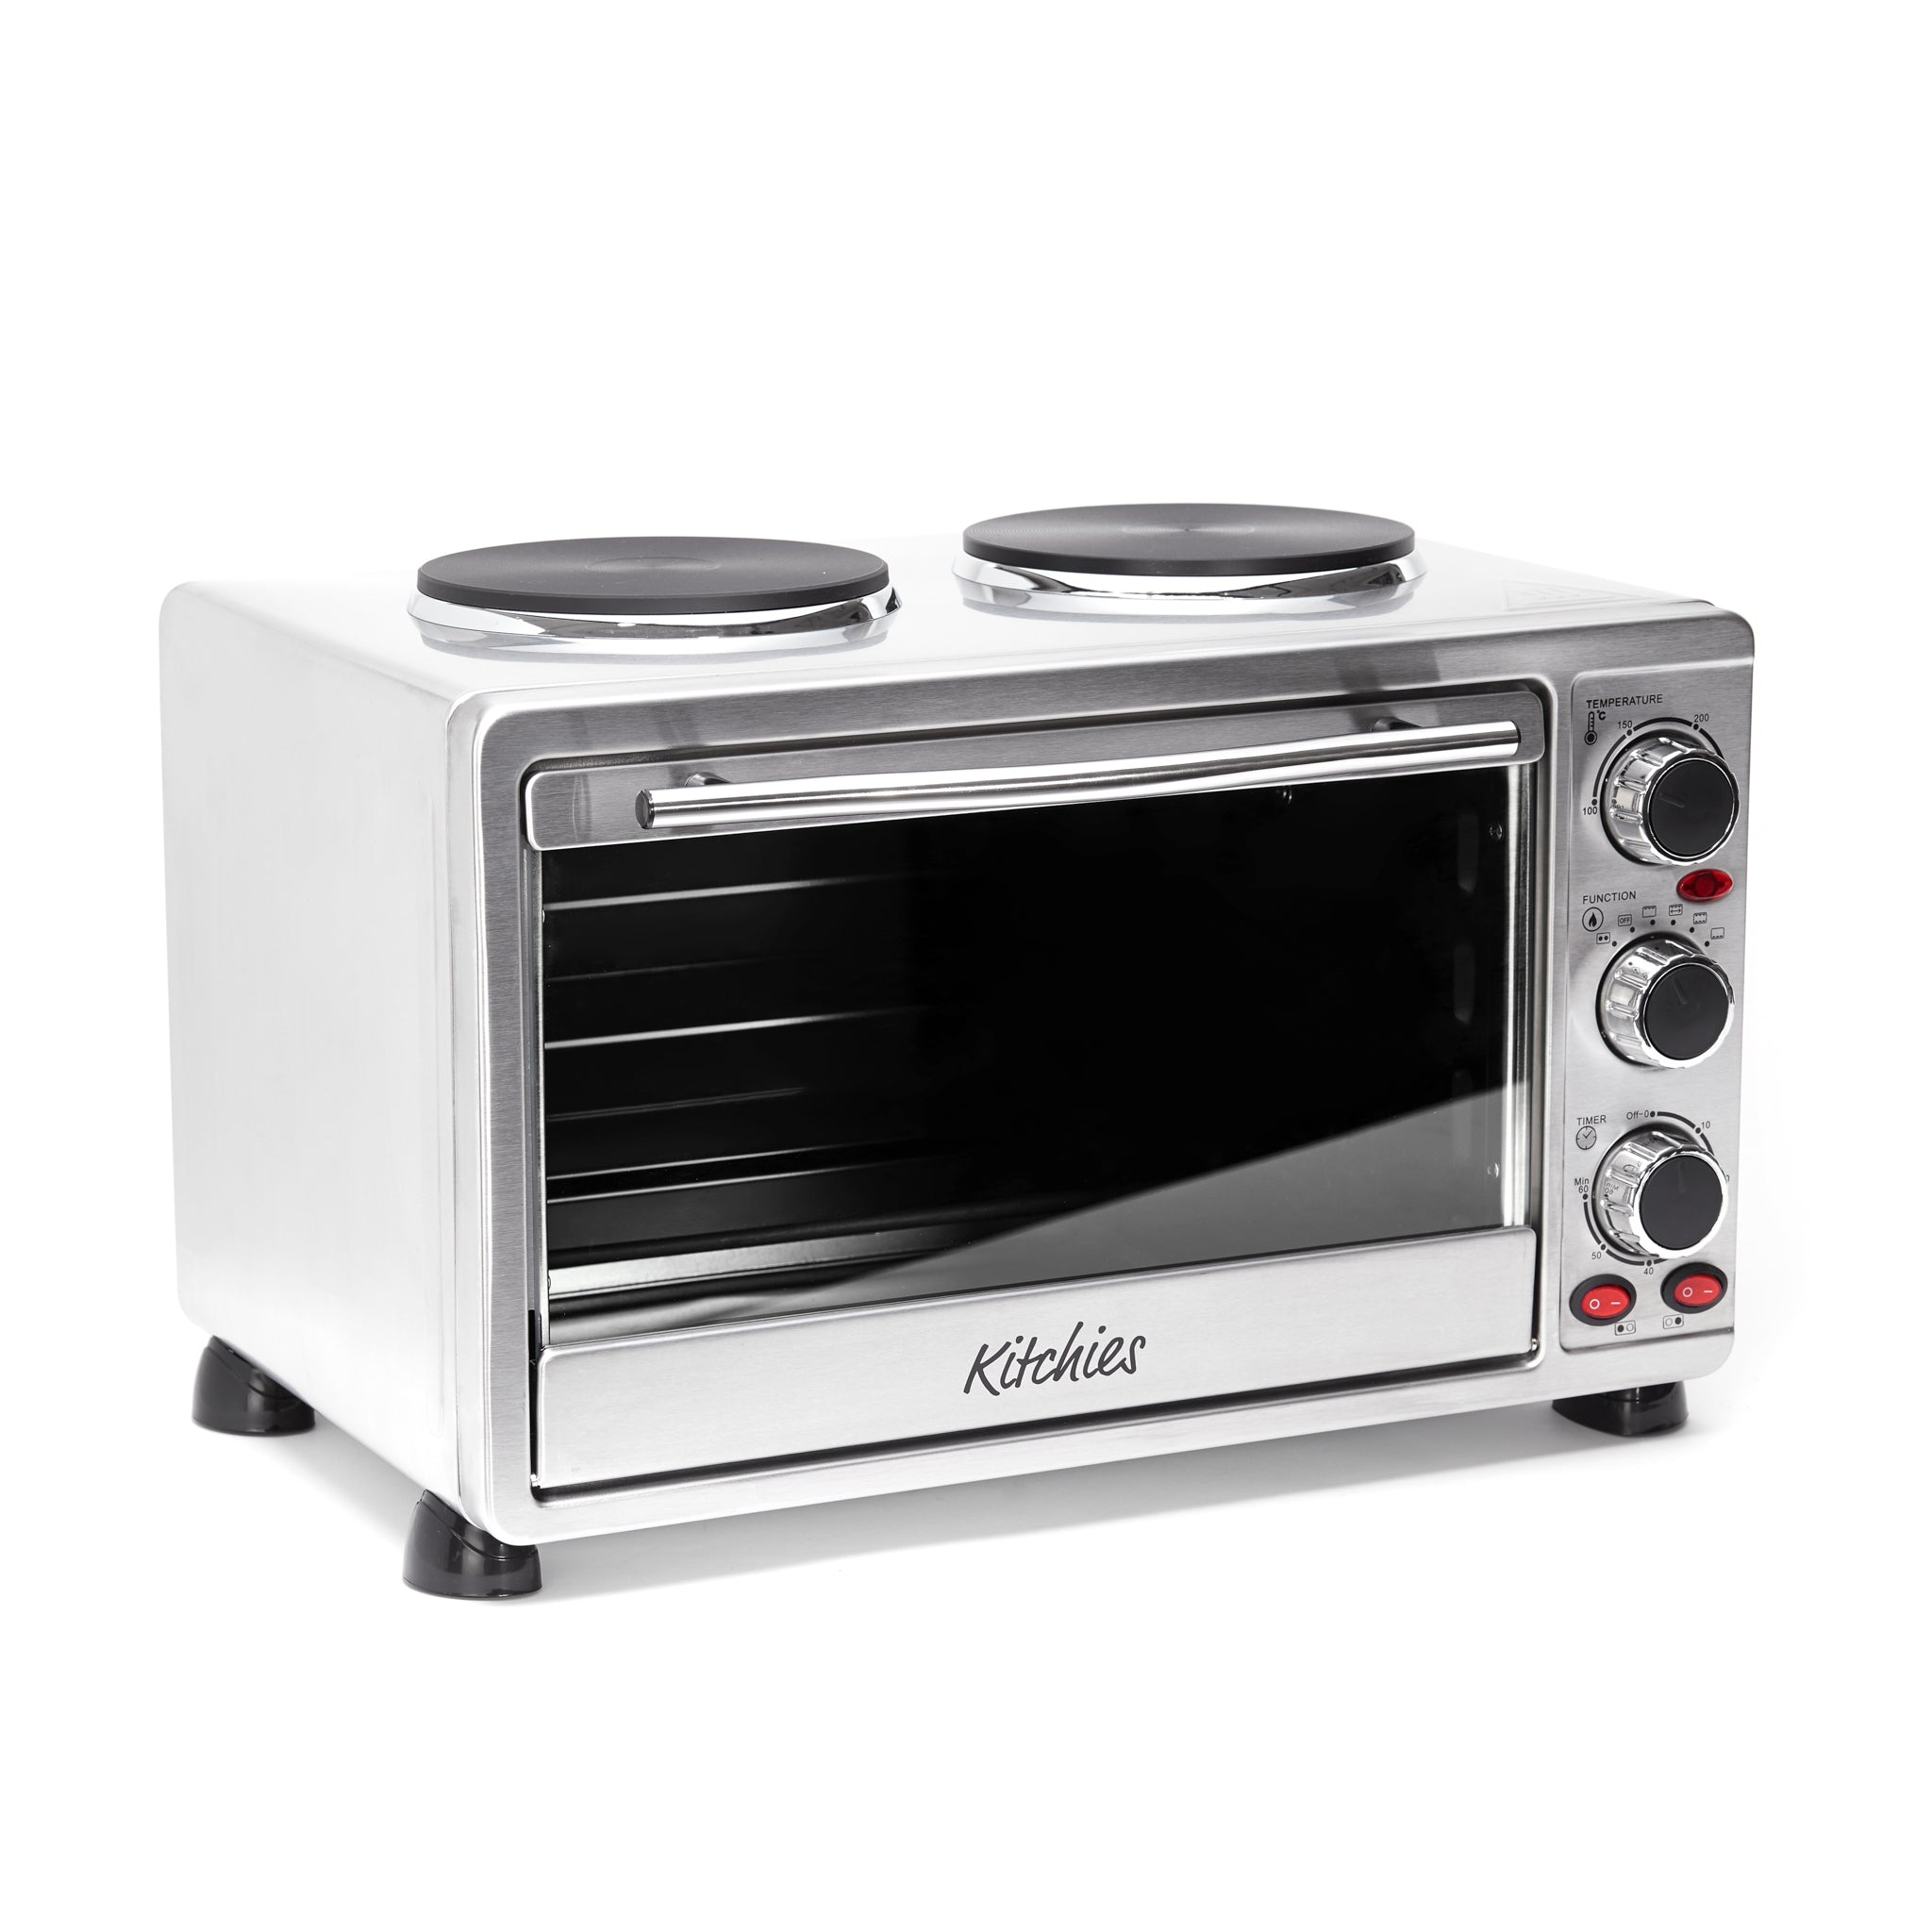 23L Countertop Mini Convection Oven with Hotplates in Stainless Steel